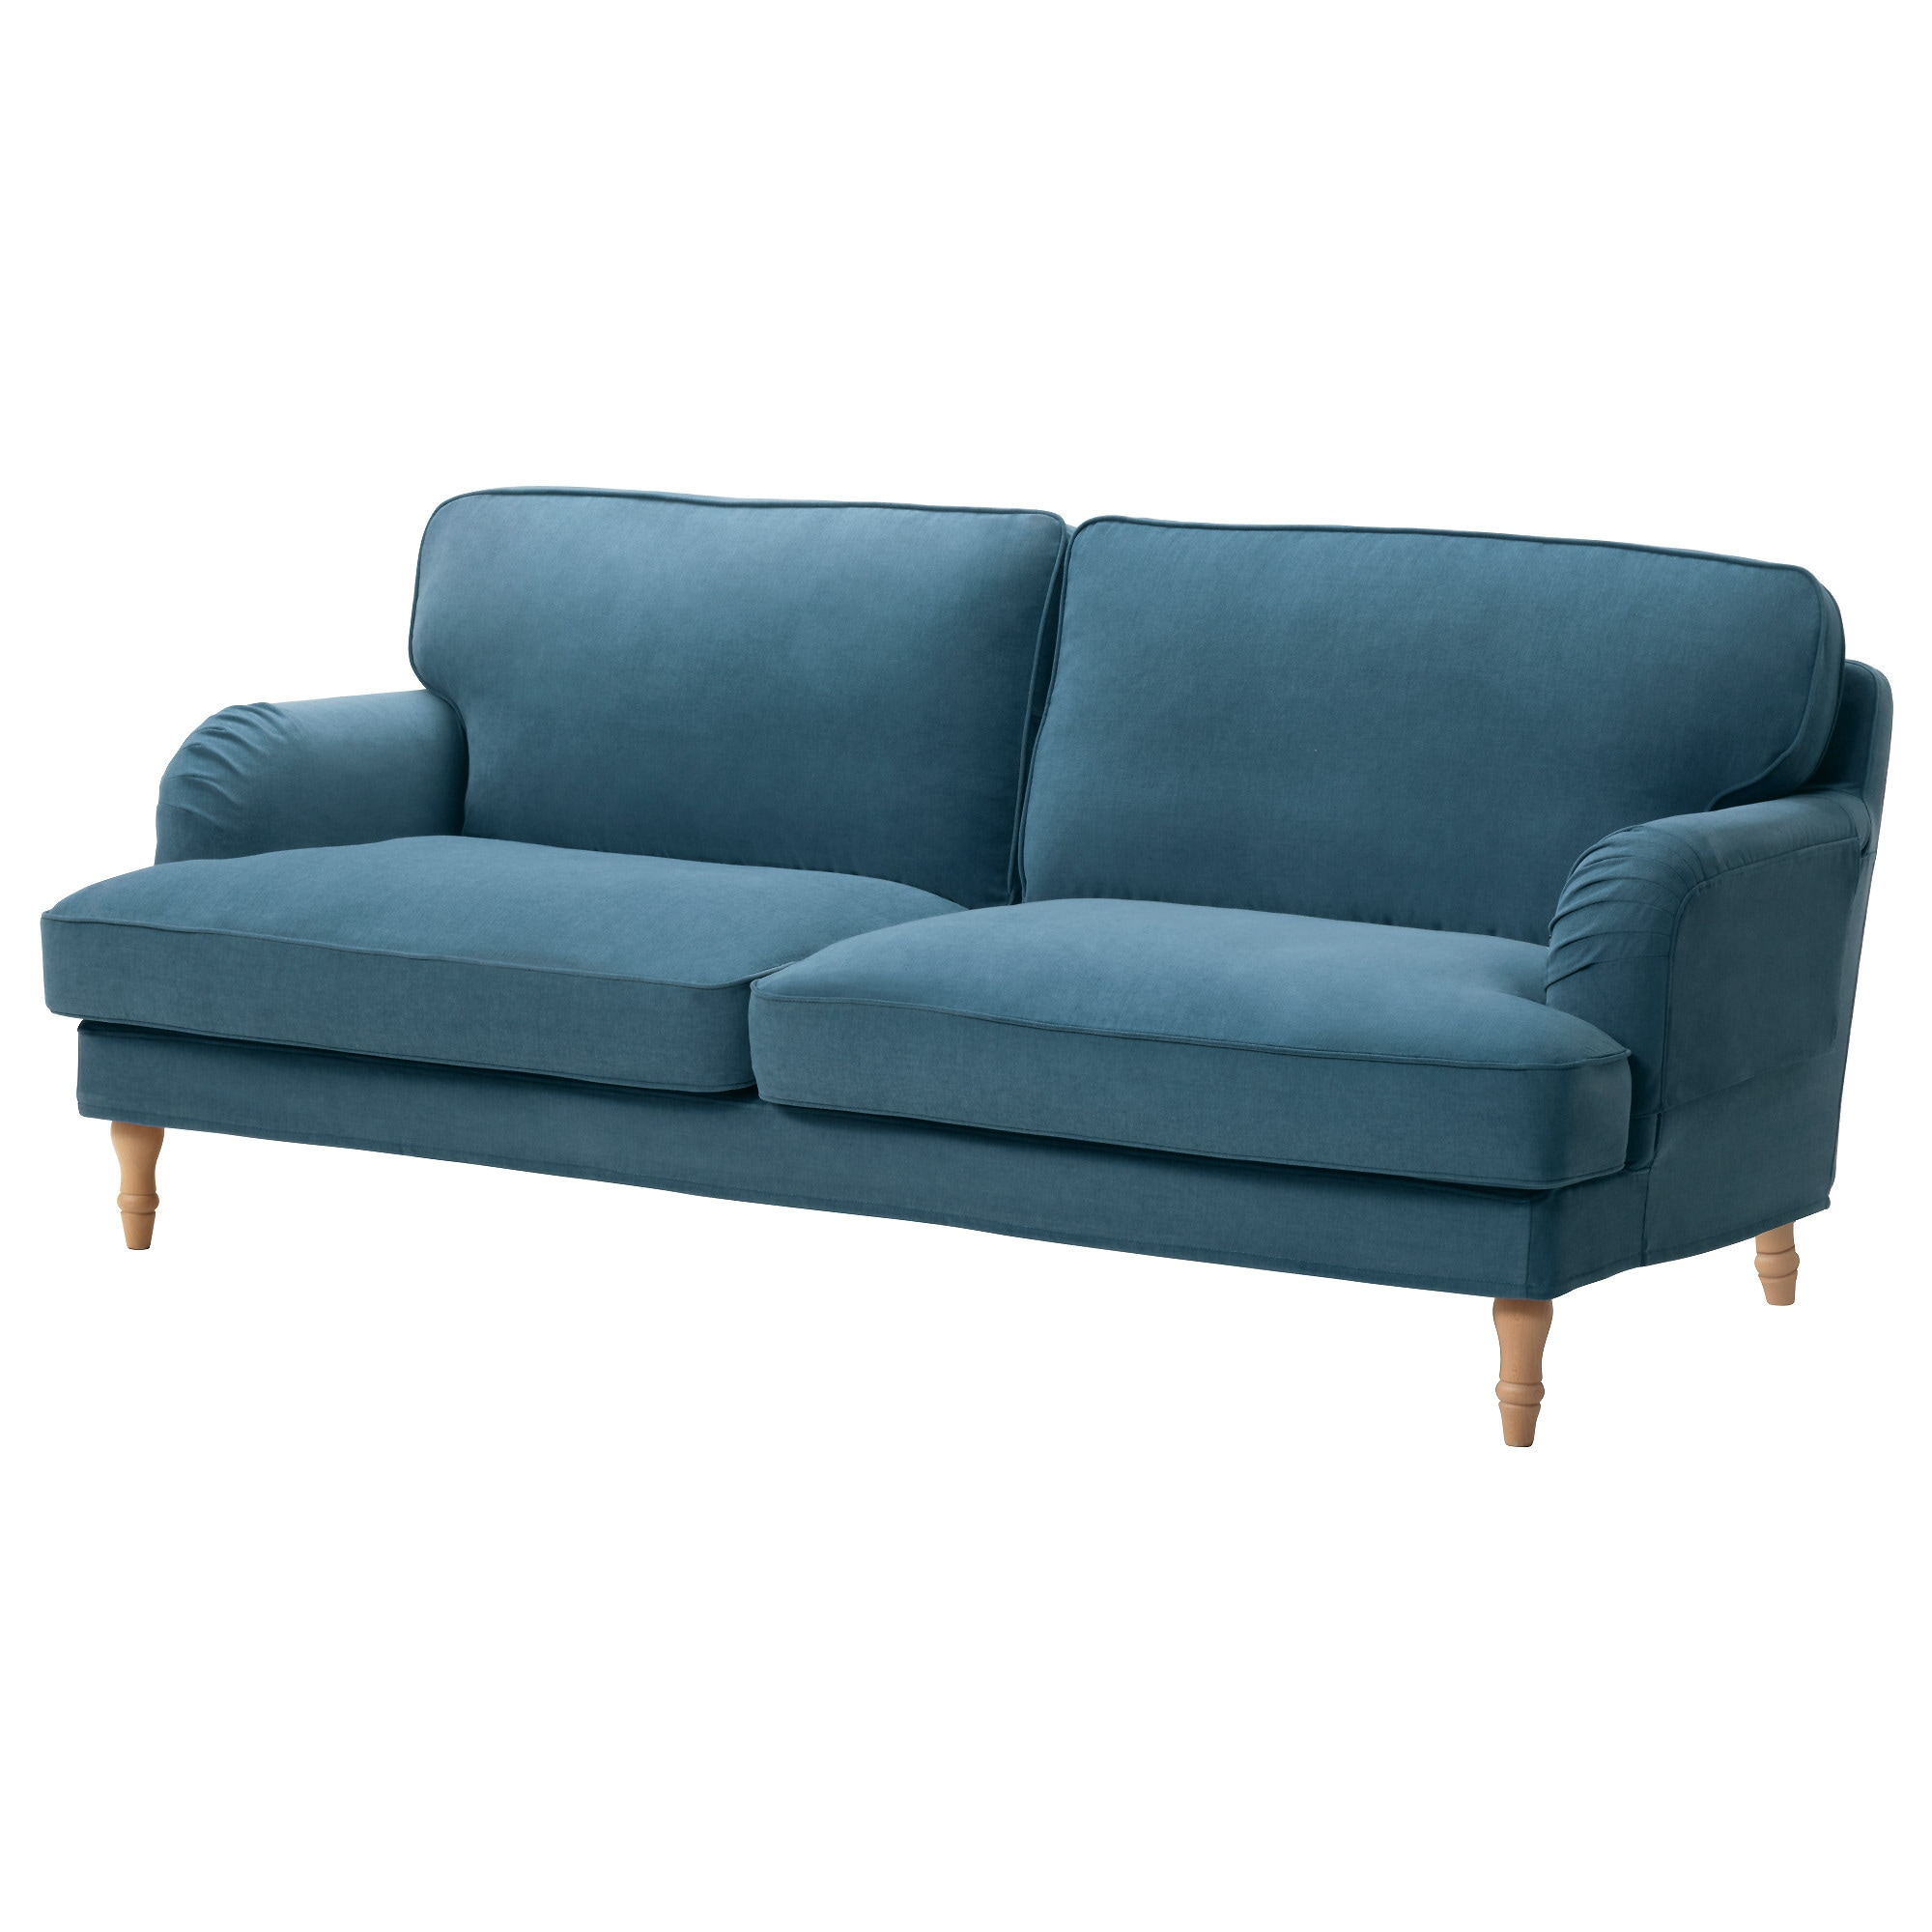 Blue Sofas Ikea Stocksund Sofa Remvallen Blue White Light Brown Ikea Thesofa